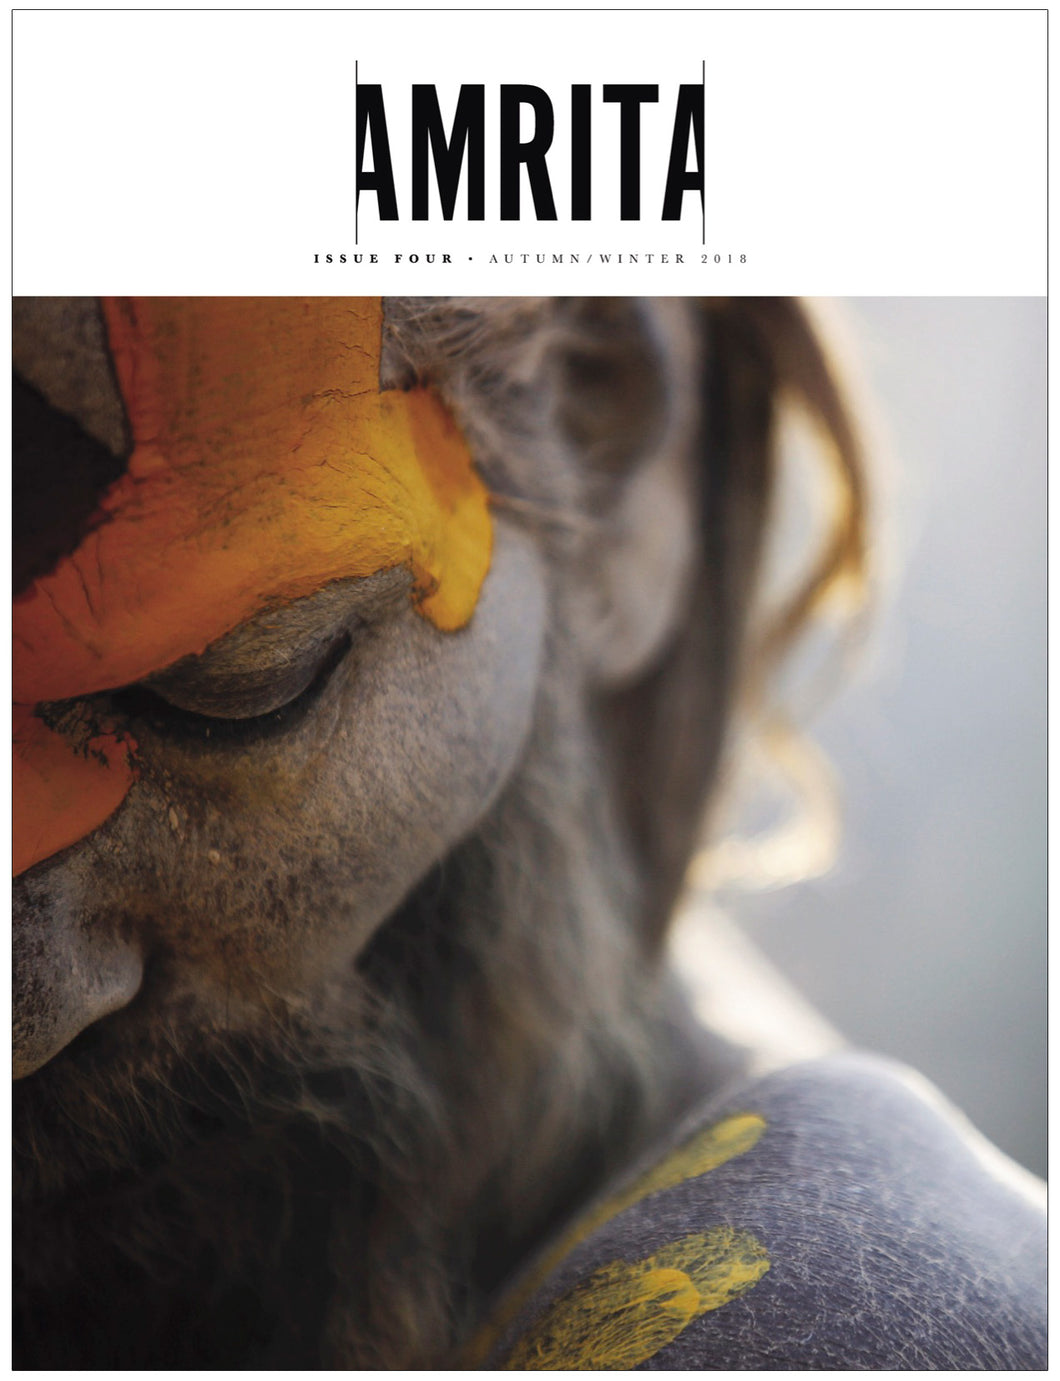 Digital AMRITA Magazine - Issue 4